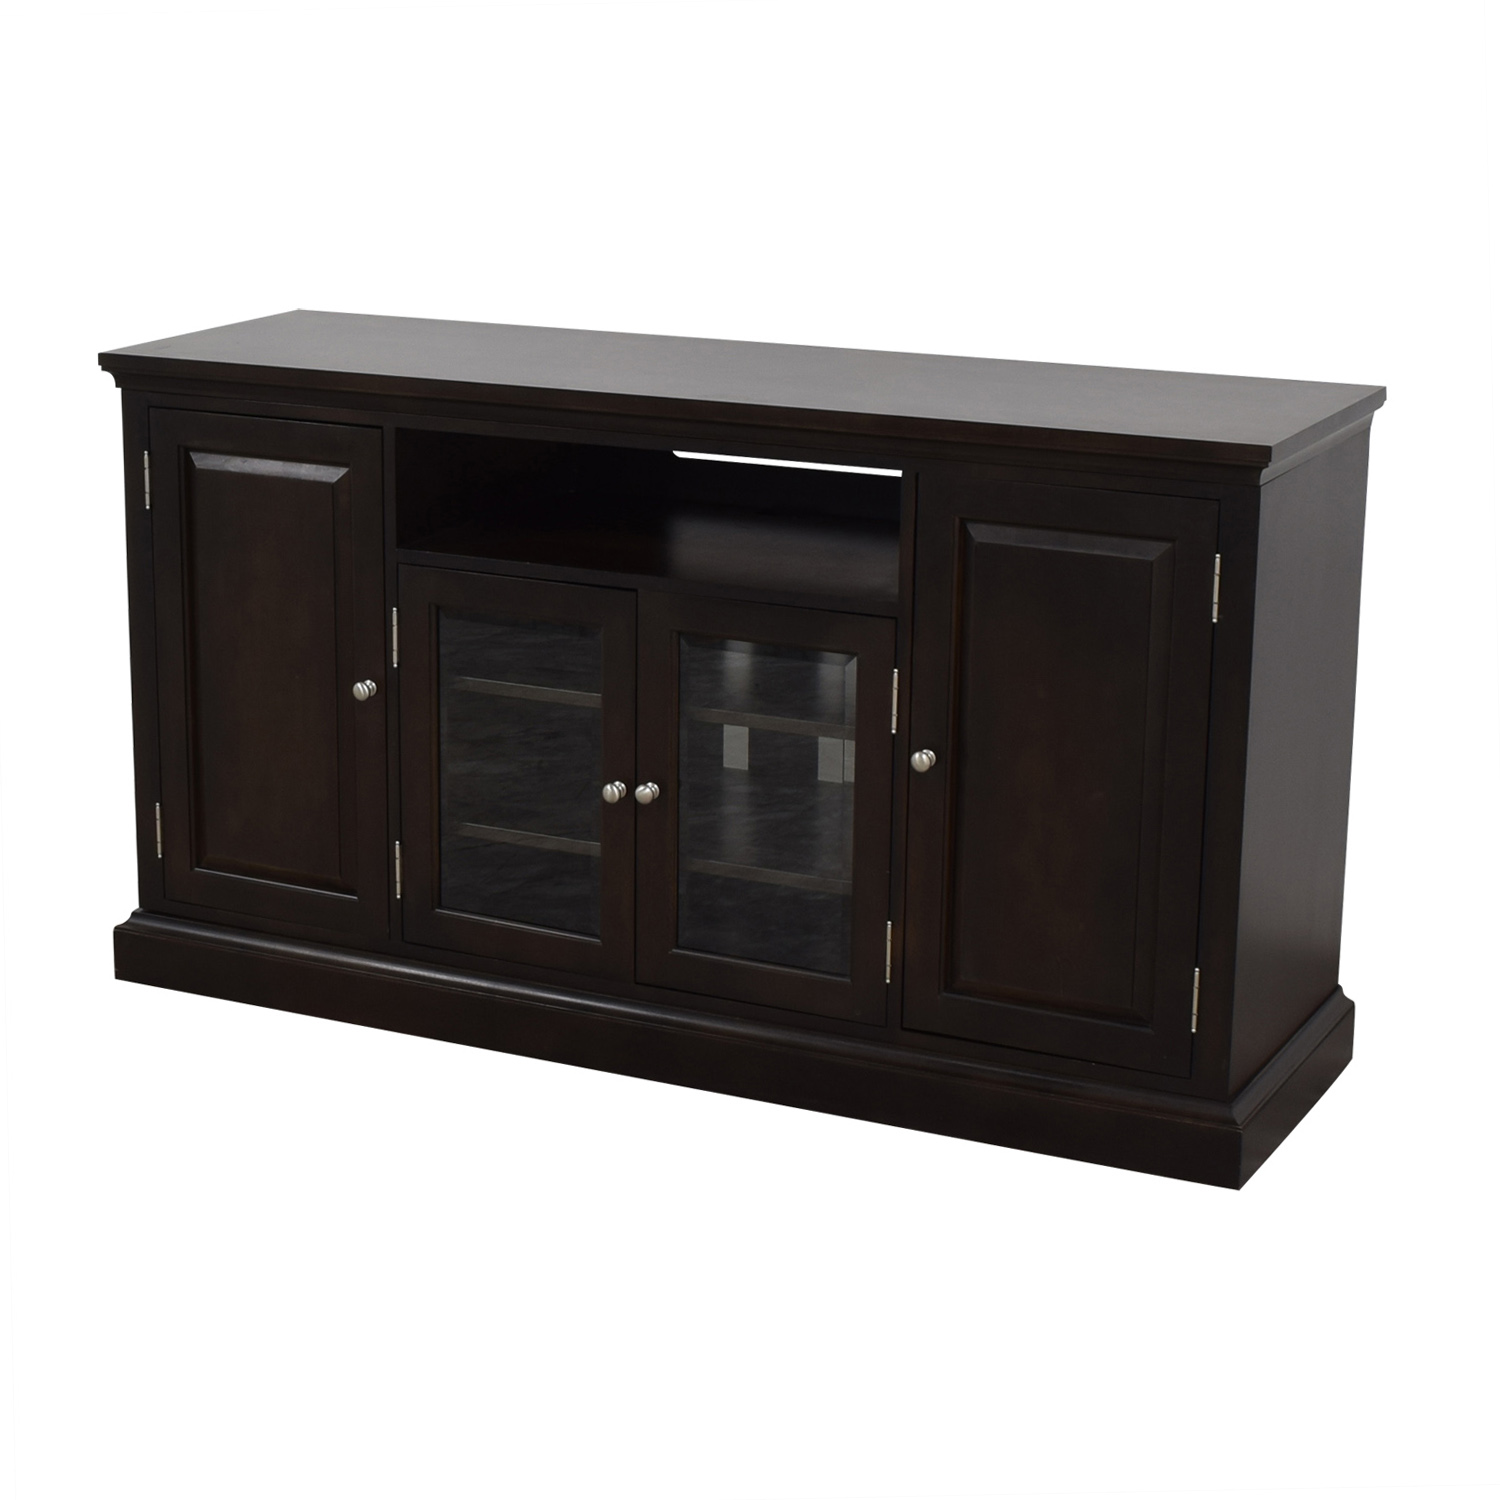 Ethan Allen Ethan Allen Wood and Glass Media Cabinet for sale